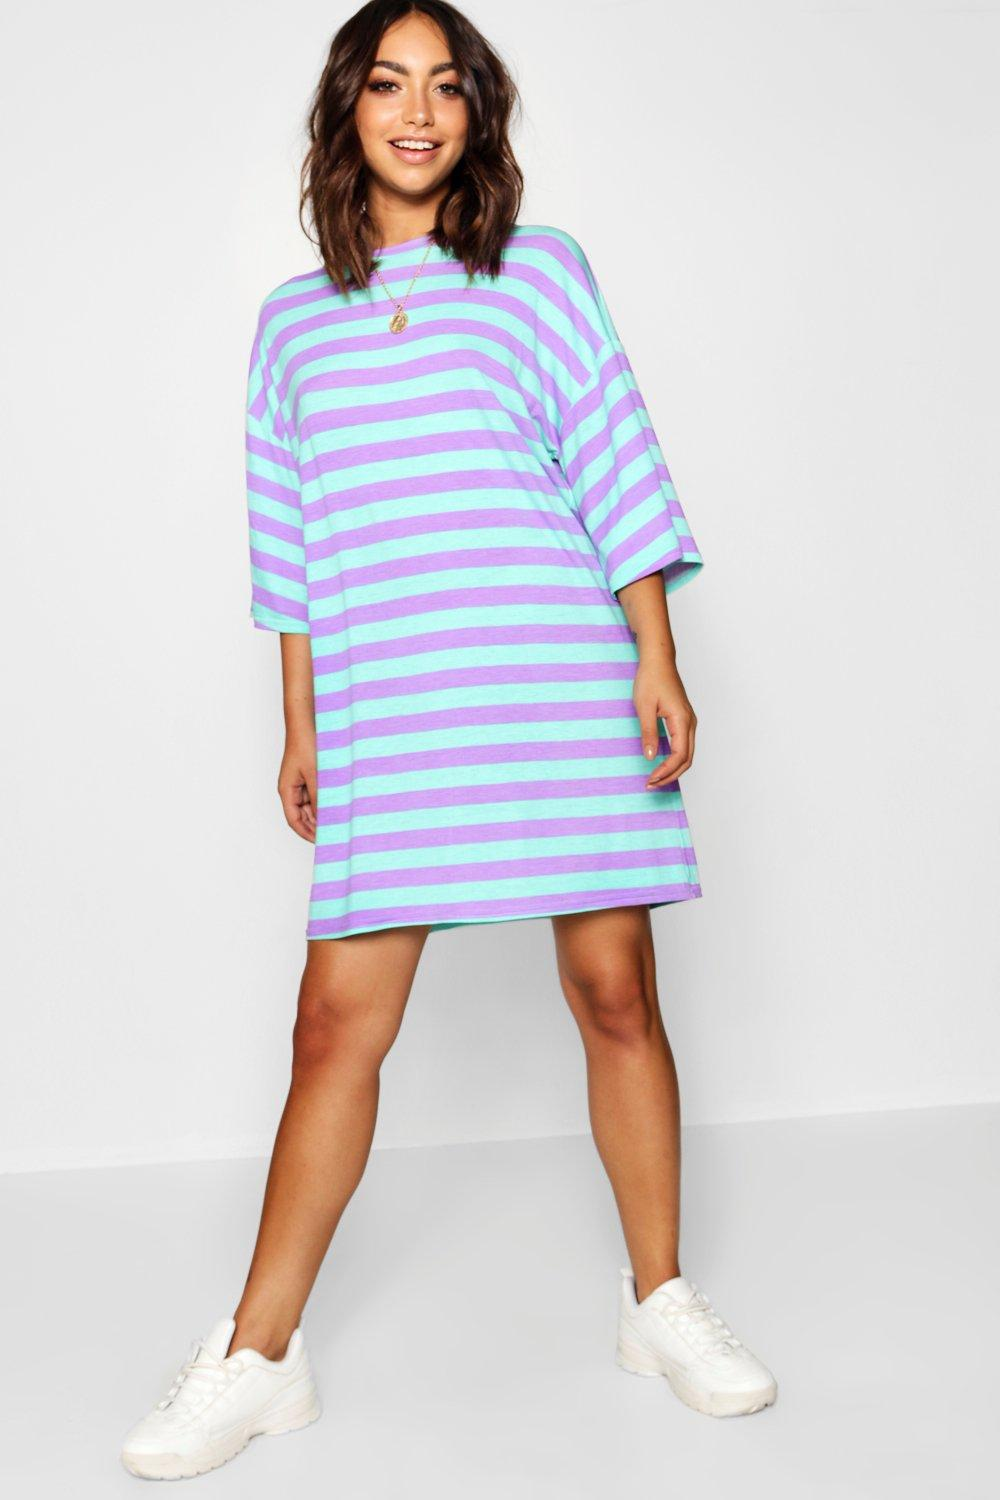 Dresses With Trainers: How To Nail The